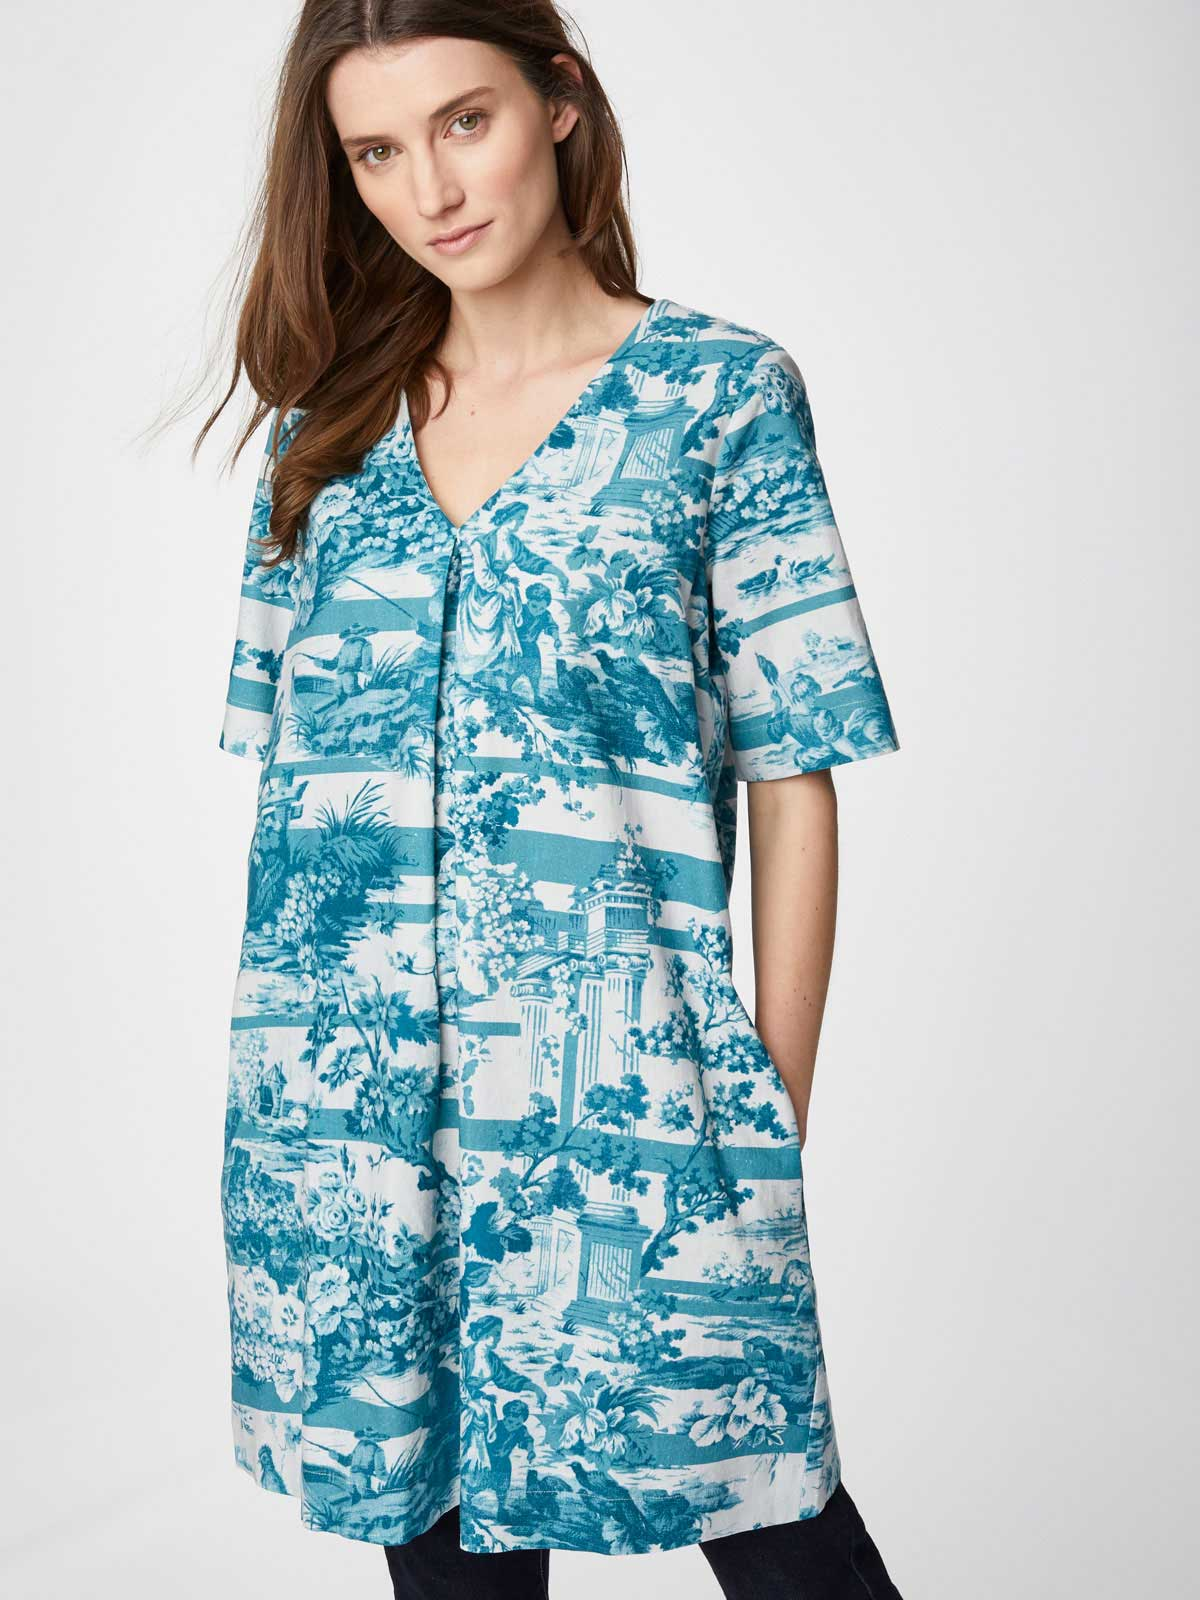 Thought SALE Toile De Jouy Tunic Dress WAS £55 NOW £30